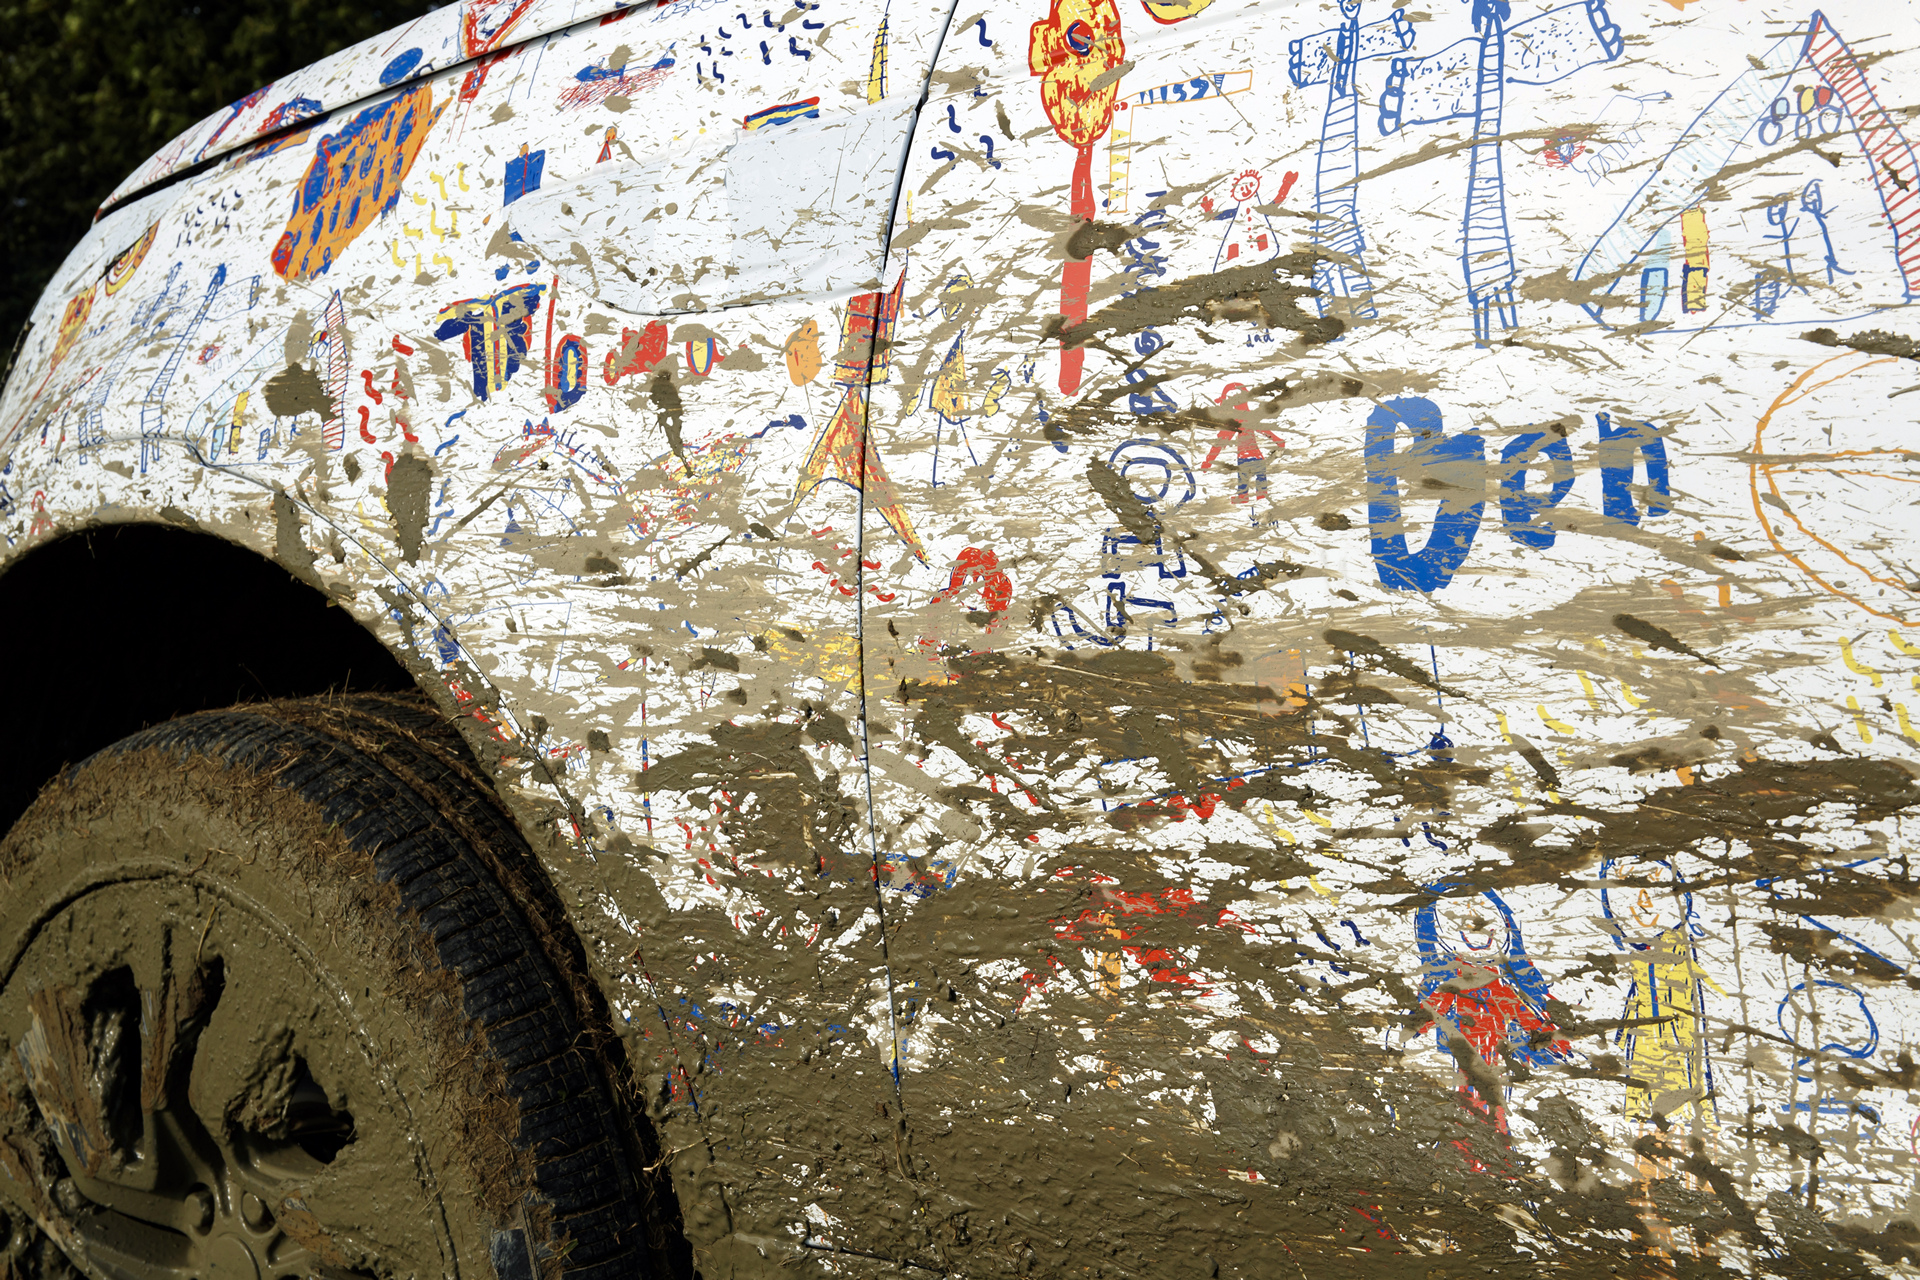 A unique vehicle wrap designed for New Discovery by the children of Land Rover's designers and engineers © Tata Group